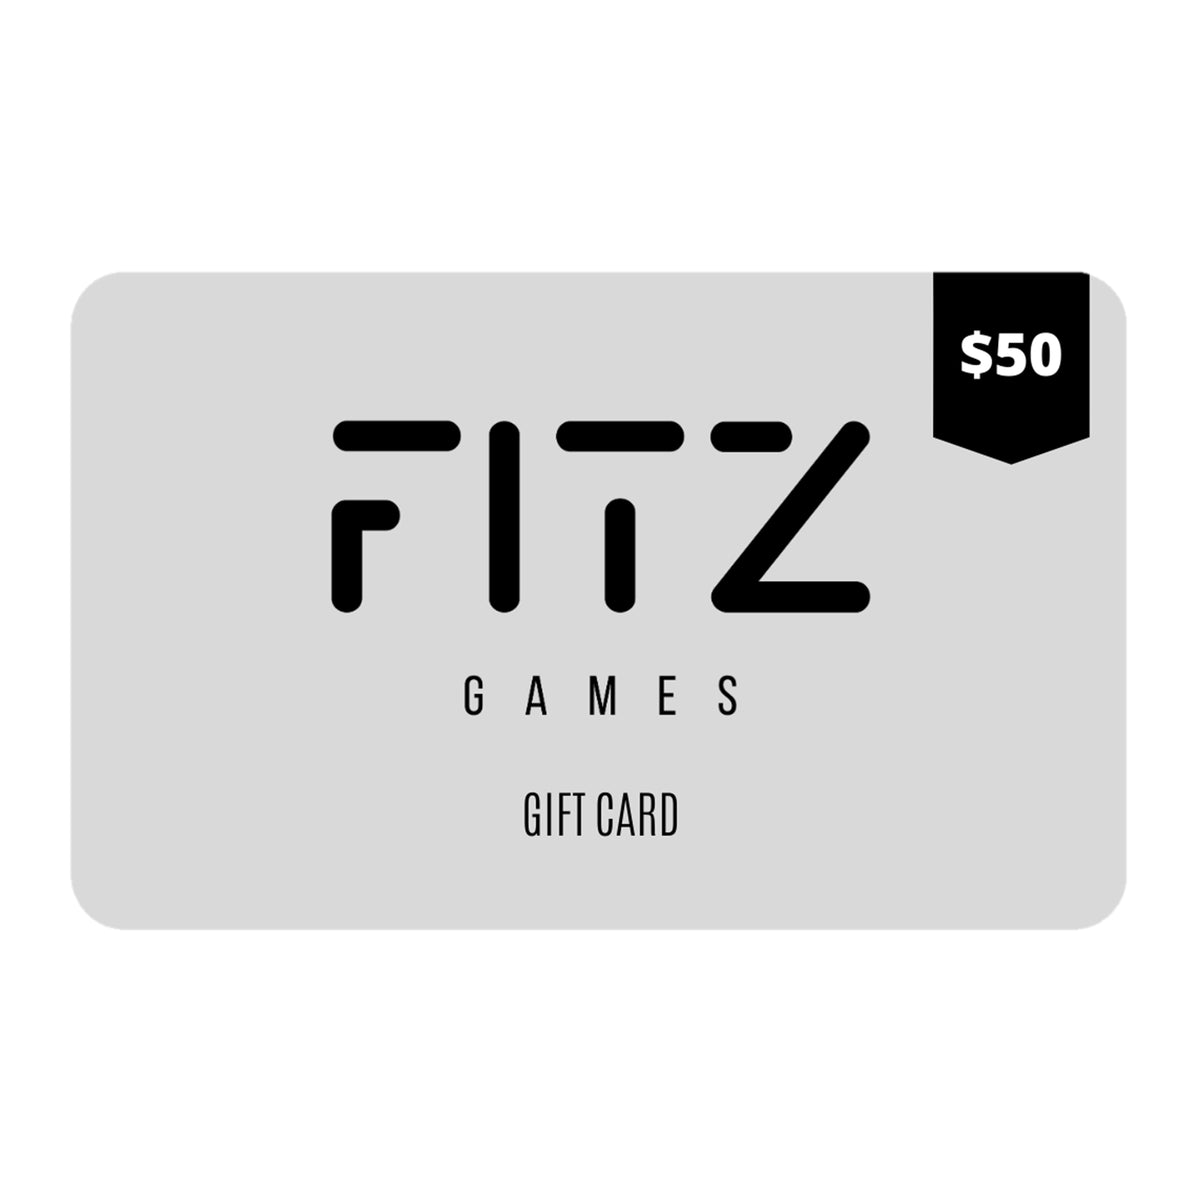 $50 FITZ Games Gift Card